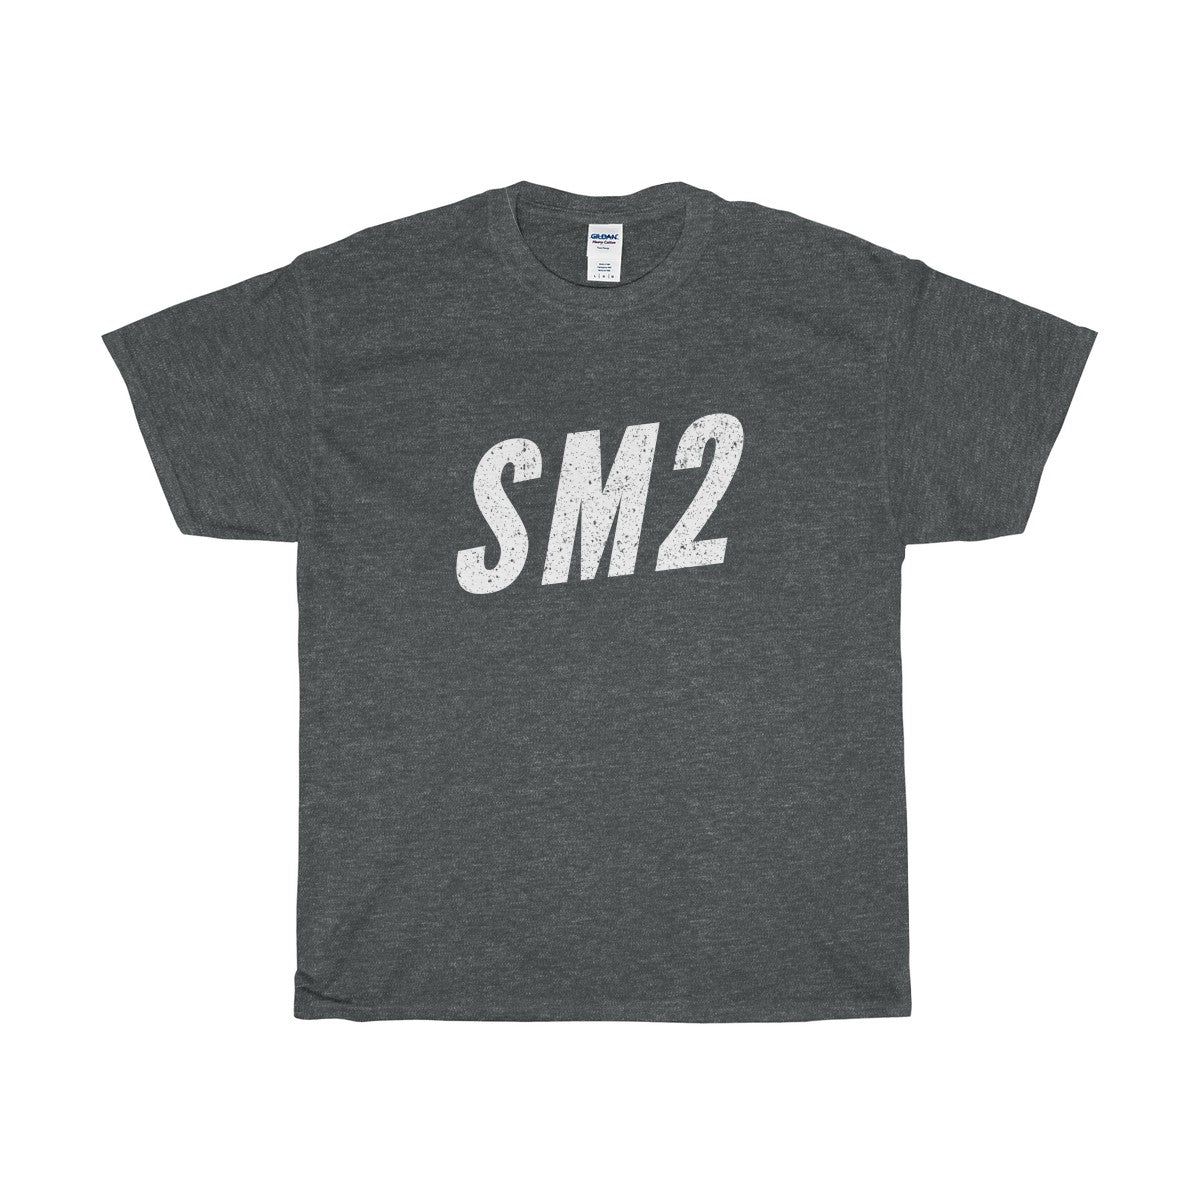 Sutton SM2 T-Shirt